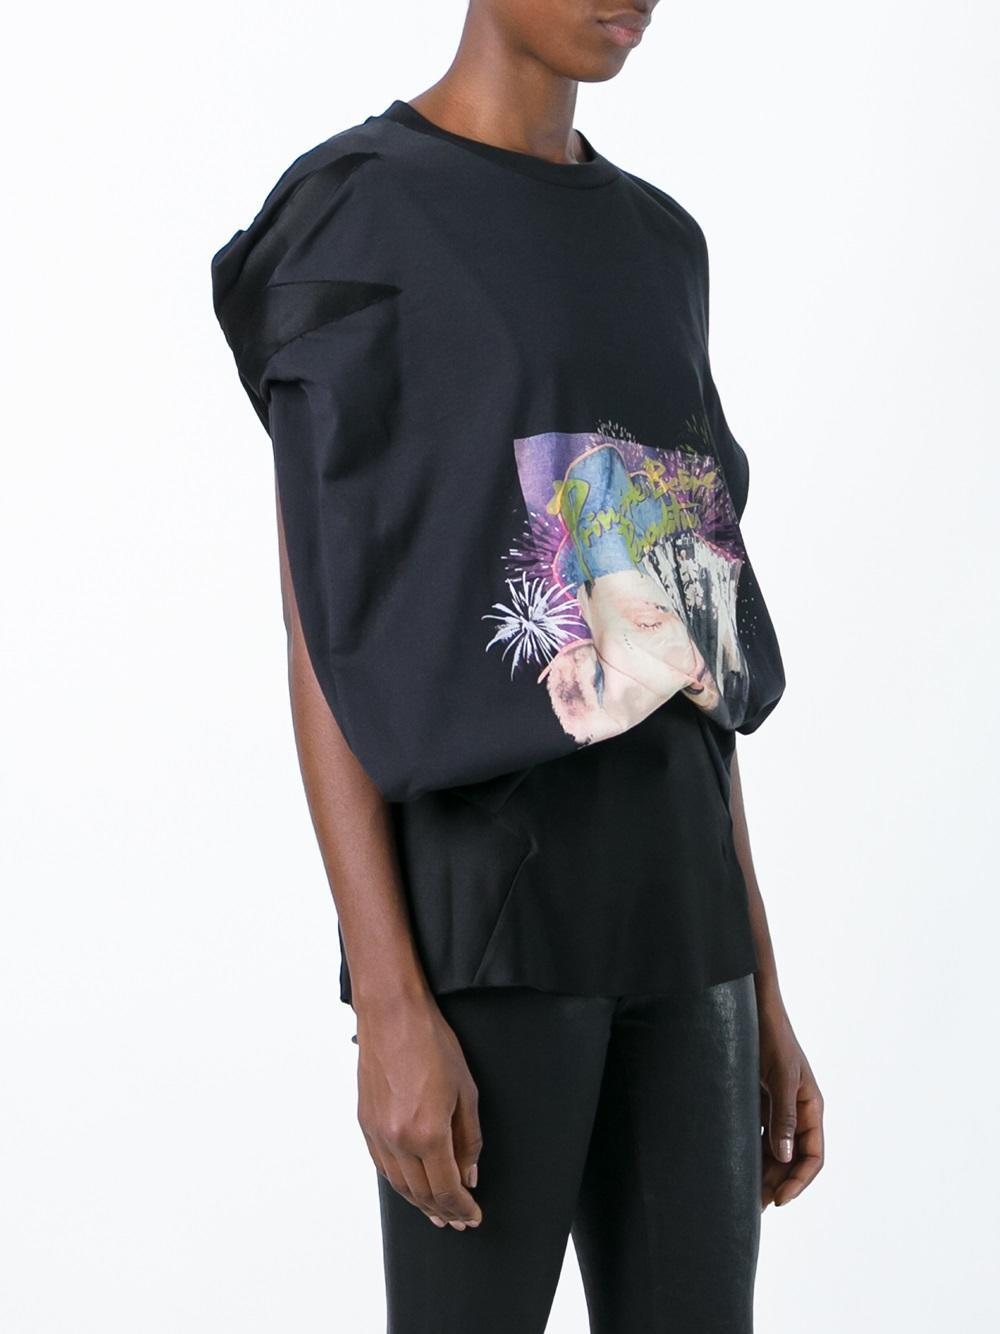 printed cut out detail top - Black Maison Martin Margiela Clearance Looking For w3RWD